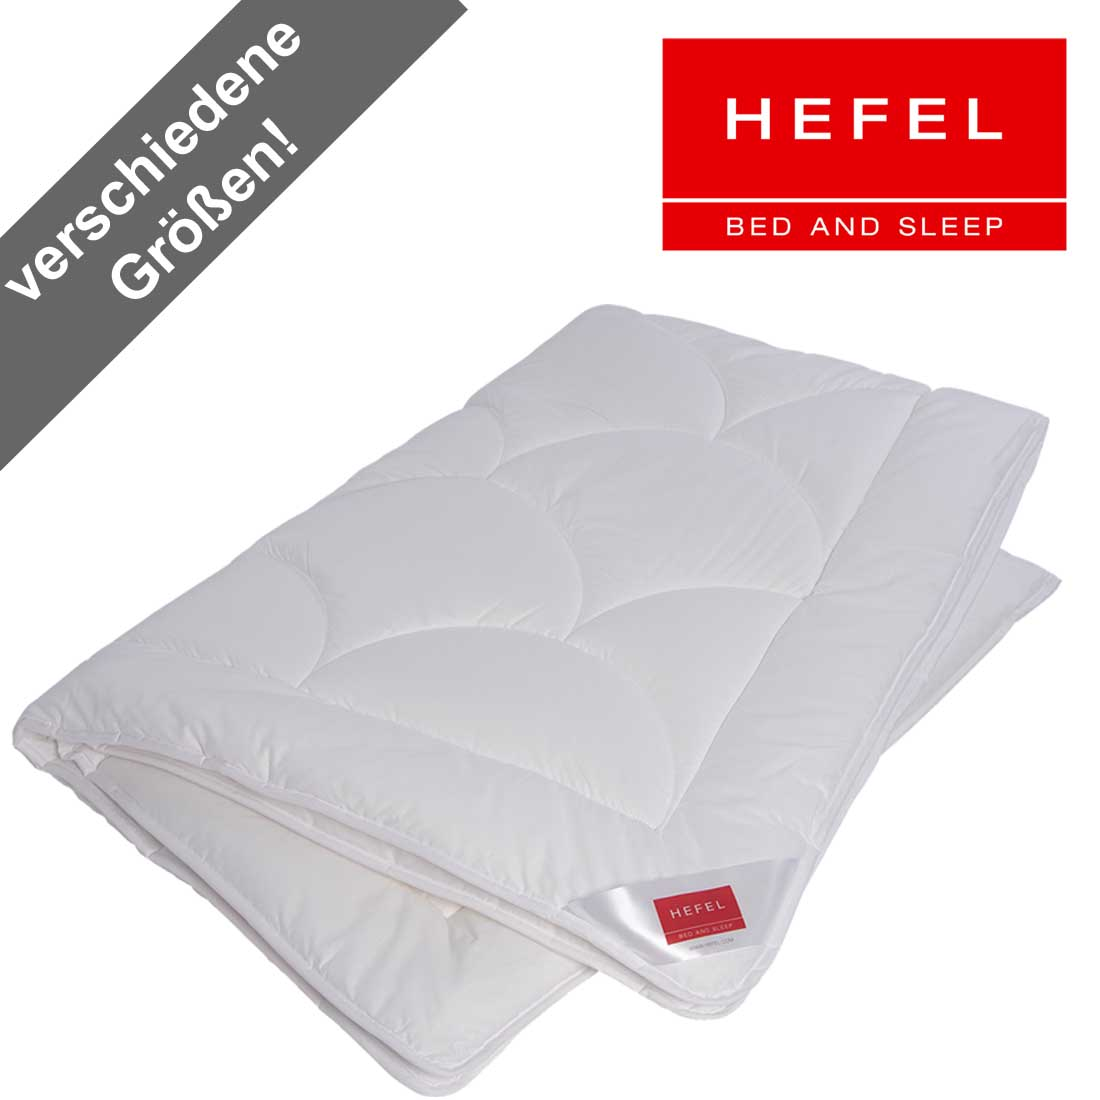 Tencel Winterdecke Edition 101 Von Hefel